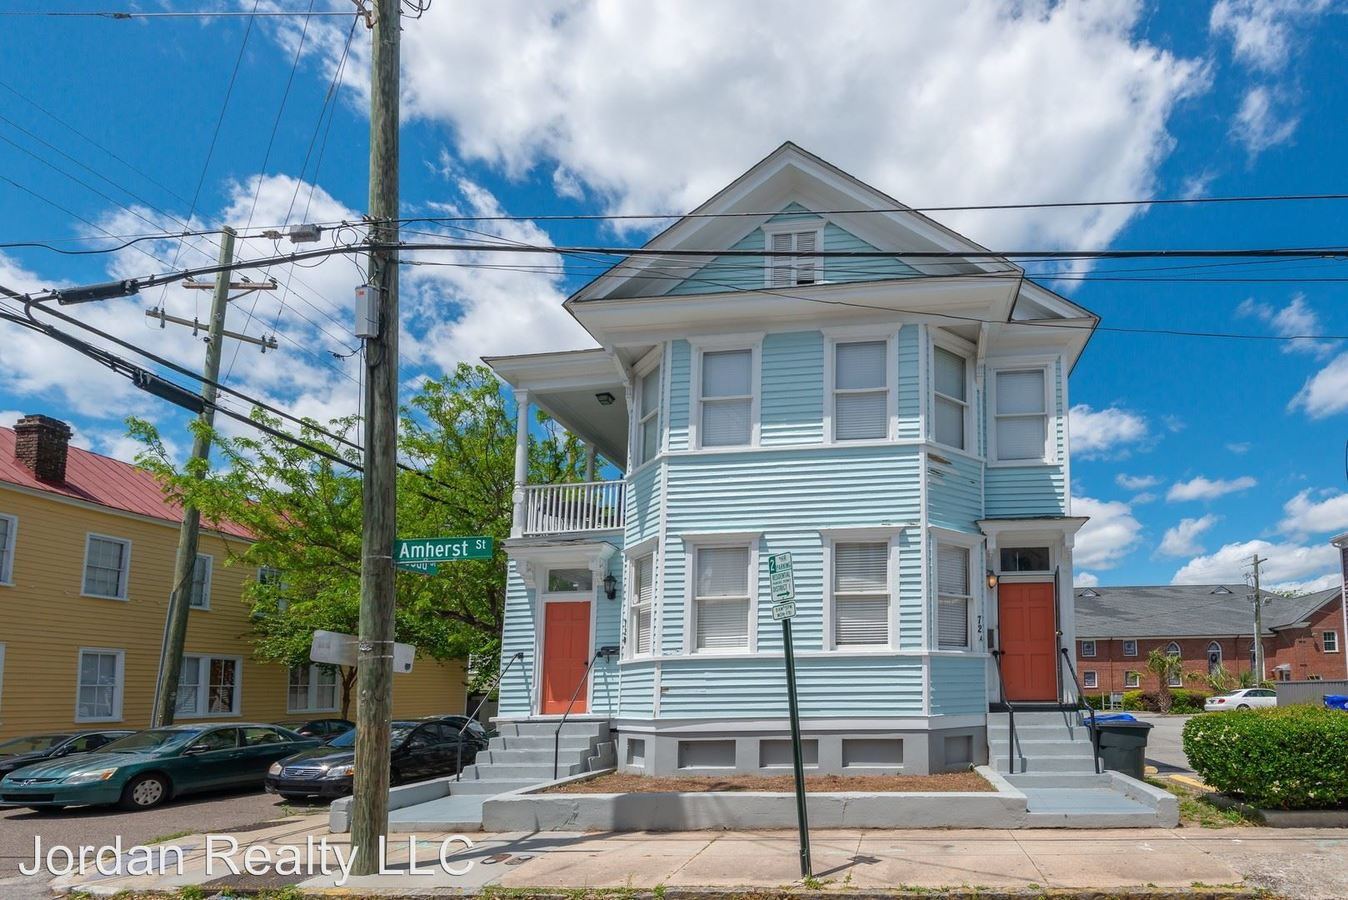 5 Bedrooms 2 Bathrooms Apartment for rent at 72 Amherst Street in Charleston, SC